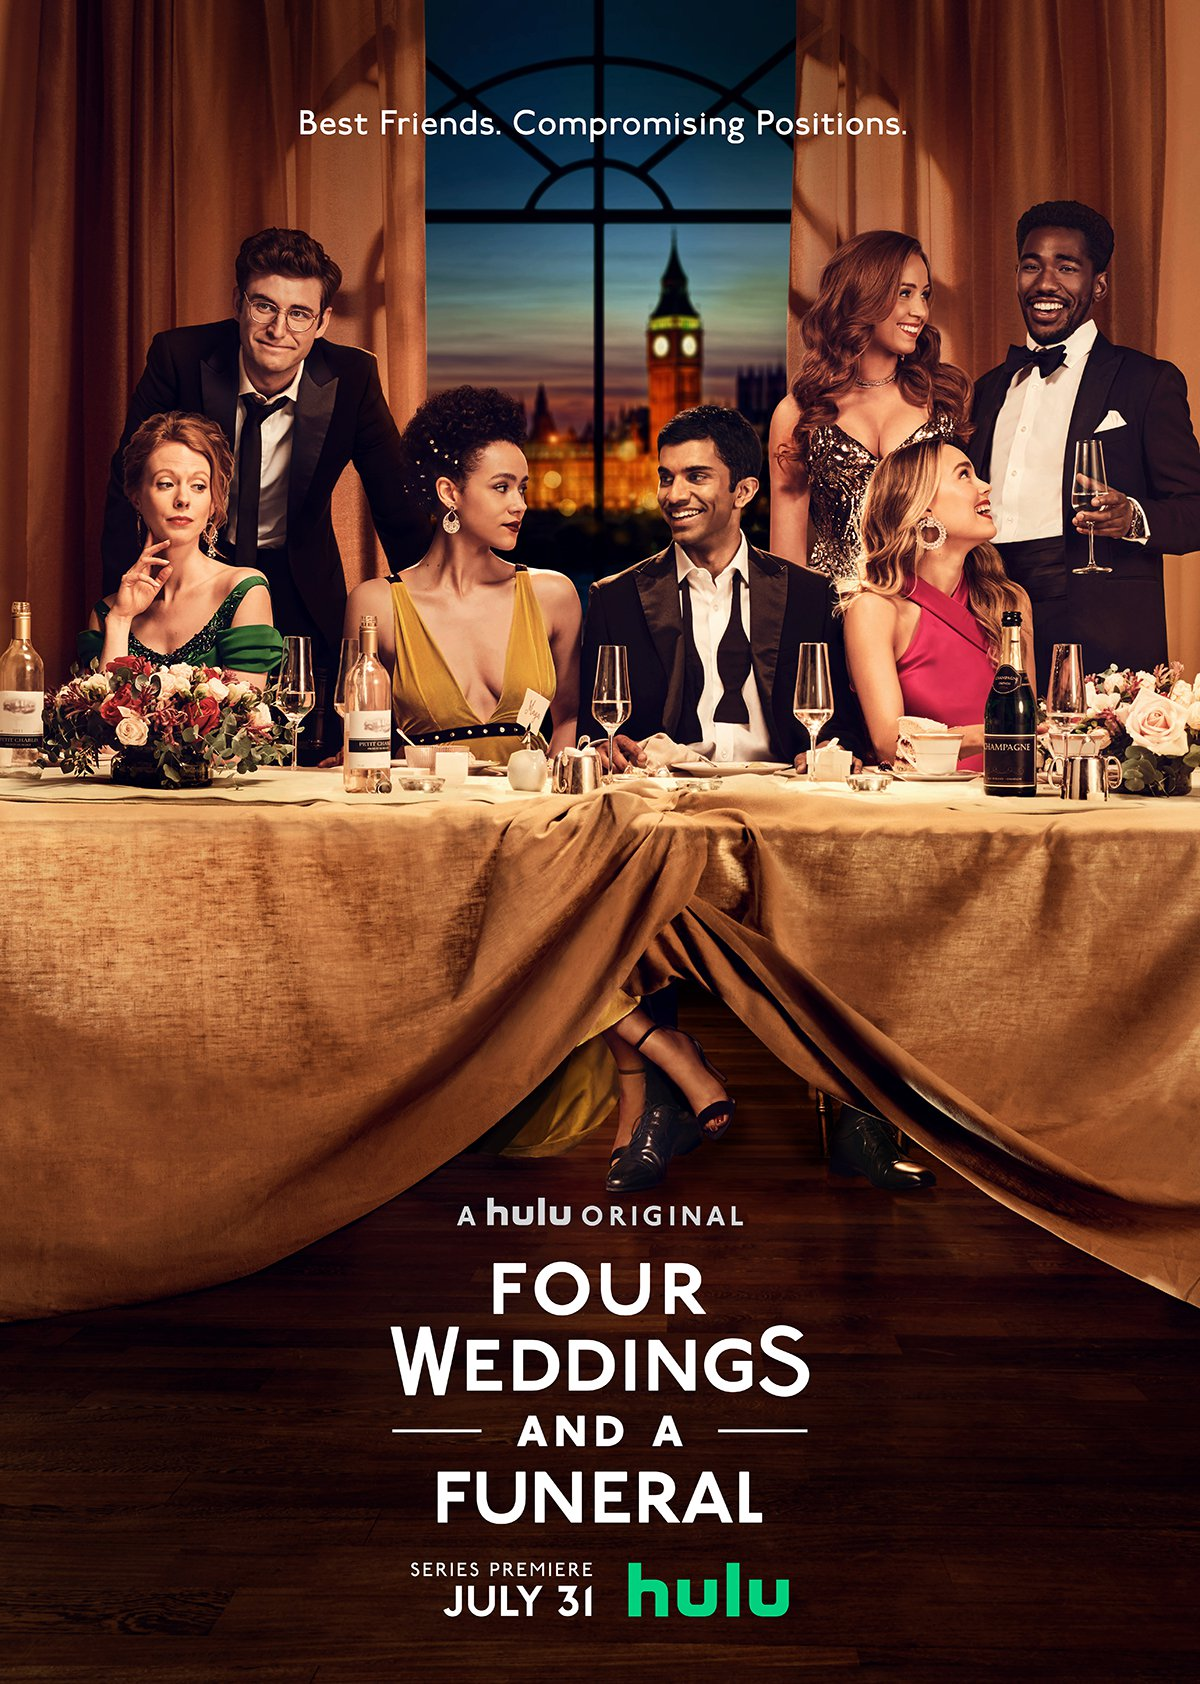 Four Weddings and a Funeral Poster 2019.jpg